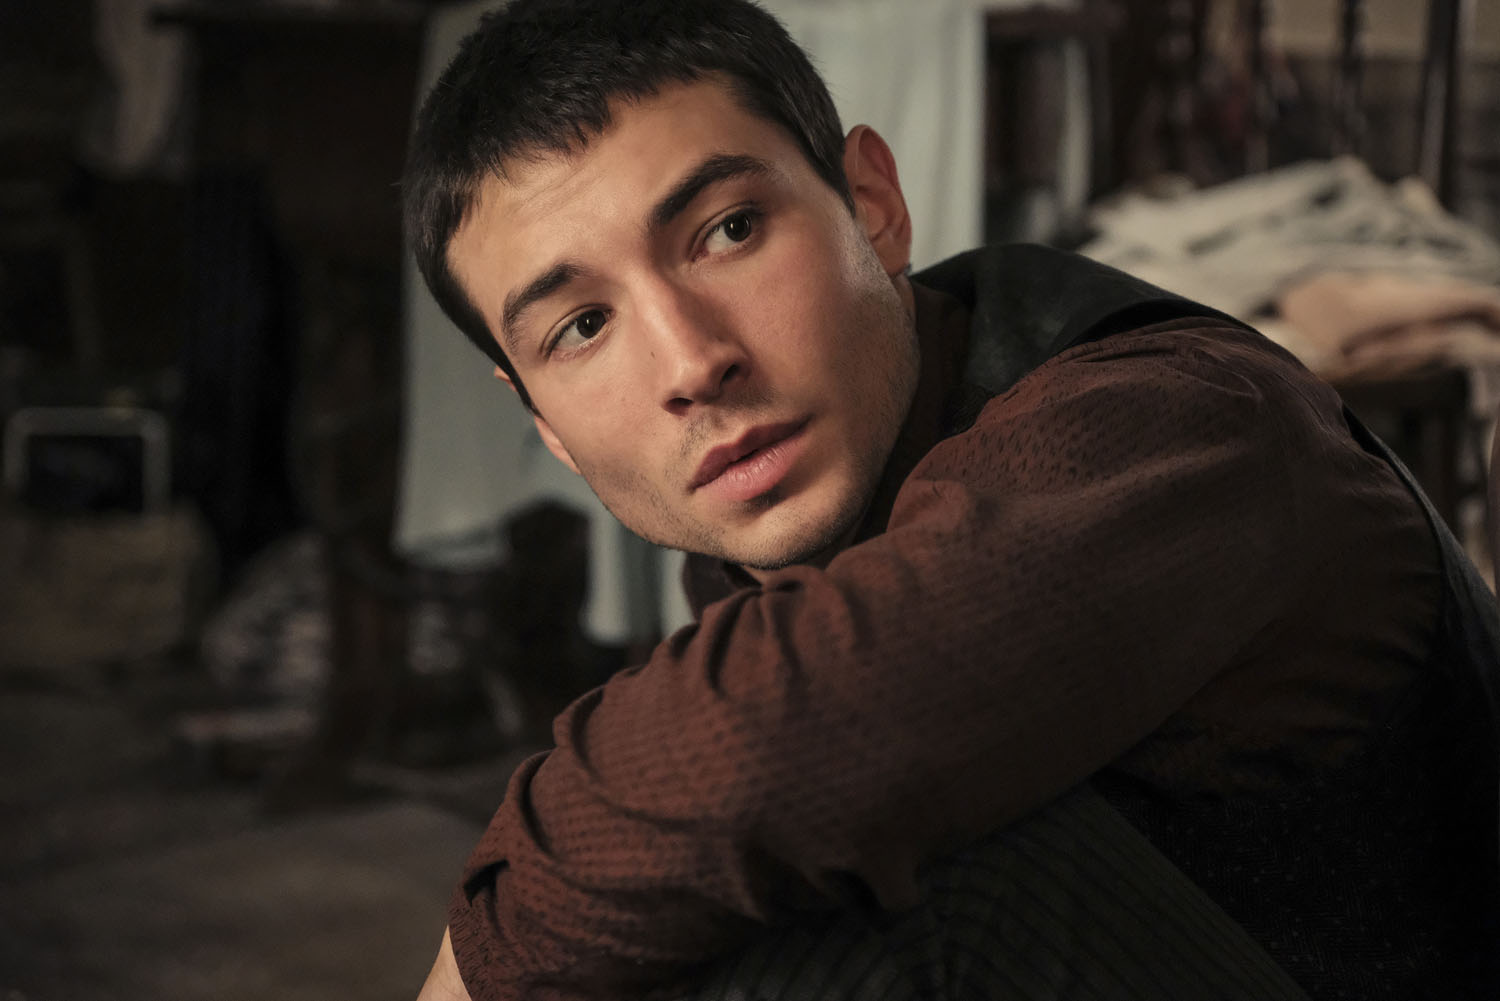 """Fantastic Beasts: The Crimes of Grindelwald"": Credence Barebone (Ezra Miller)"